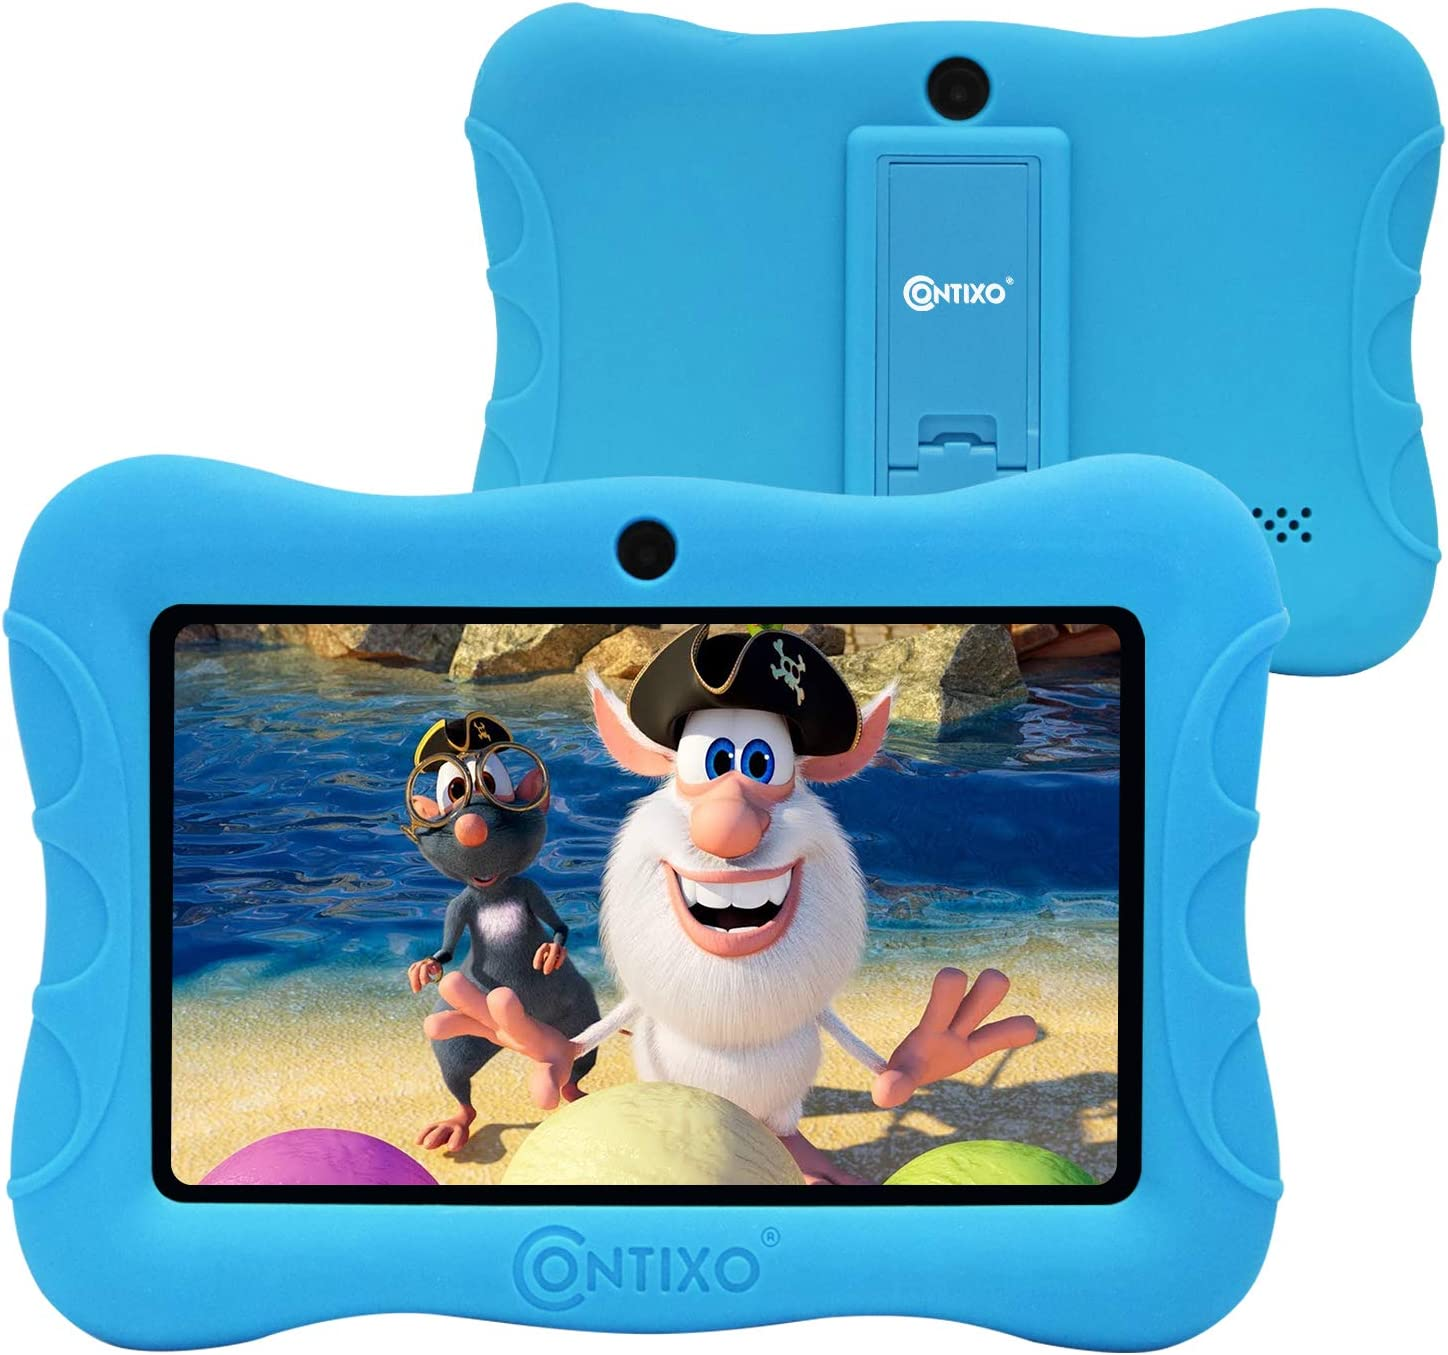 Contixo 7 Inch Kids Learning Tablet Parental Control 16GB Android 9.0 for at Home School Children Infant Toddlers - Pre-Loaded Educational Apps - Child-Proof Case - Great Gift for Children (Blue)